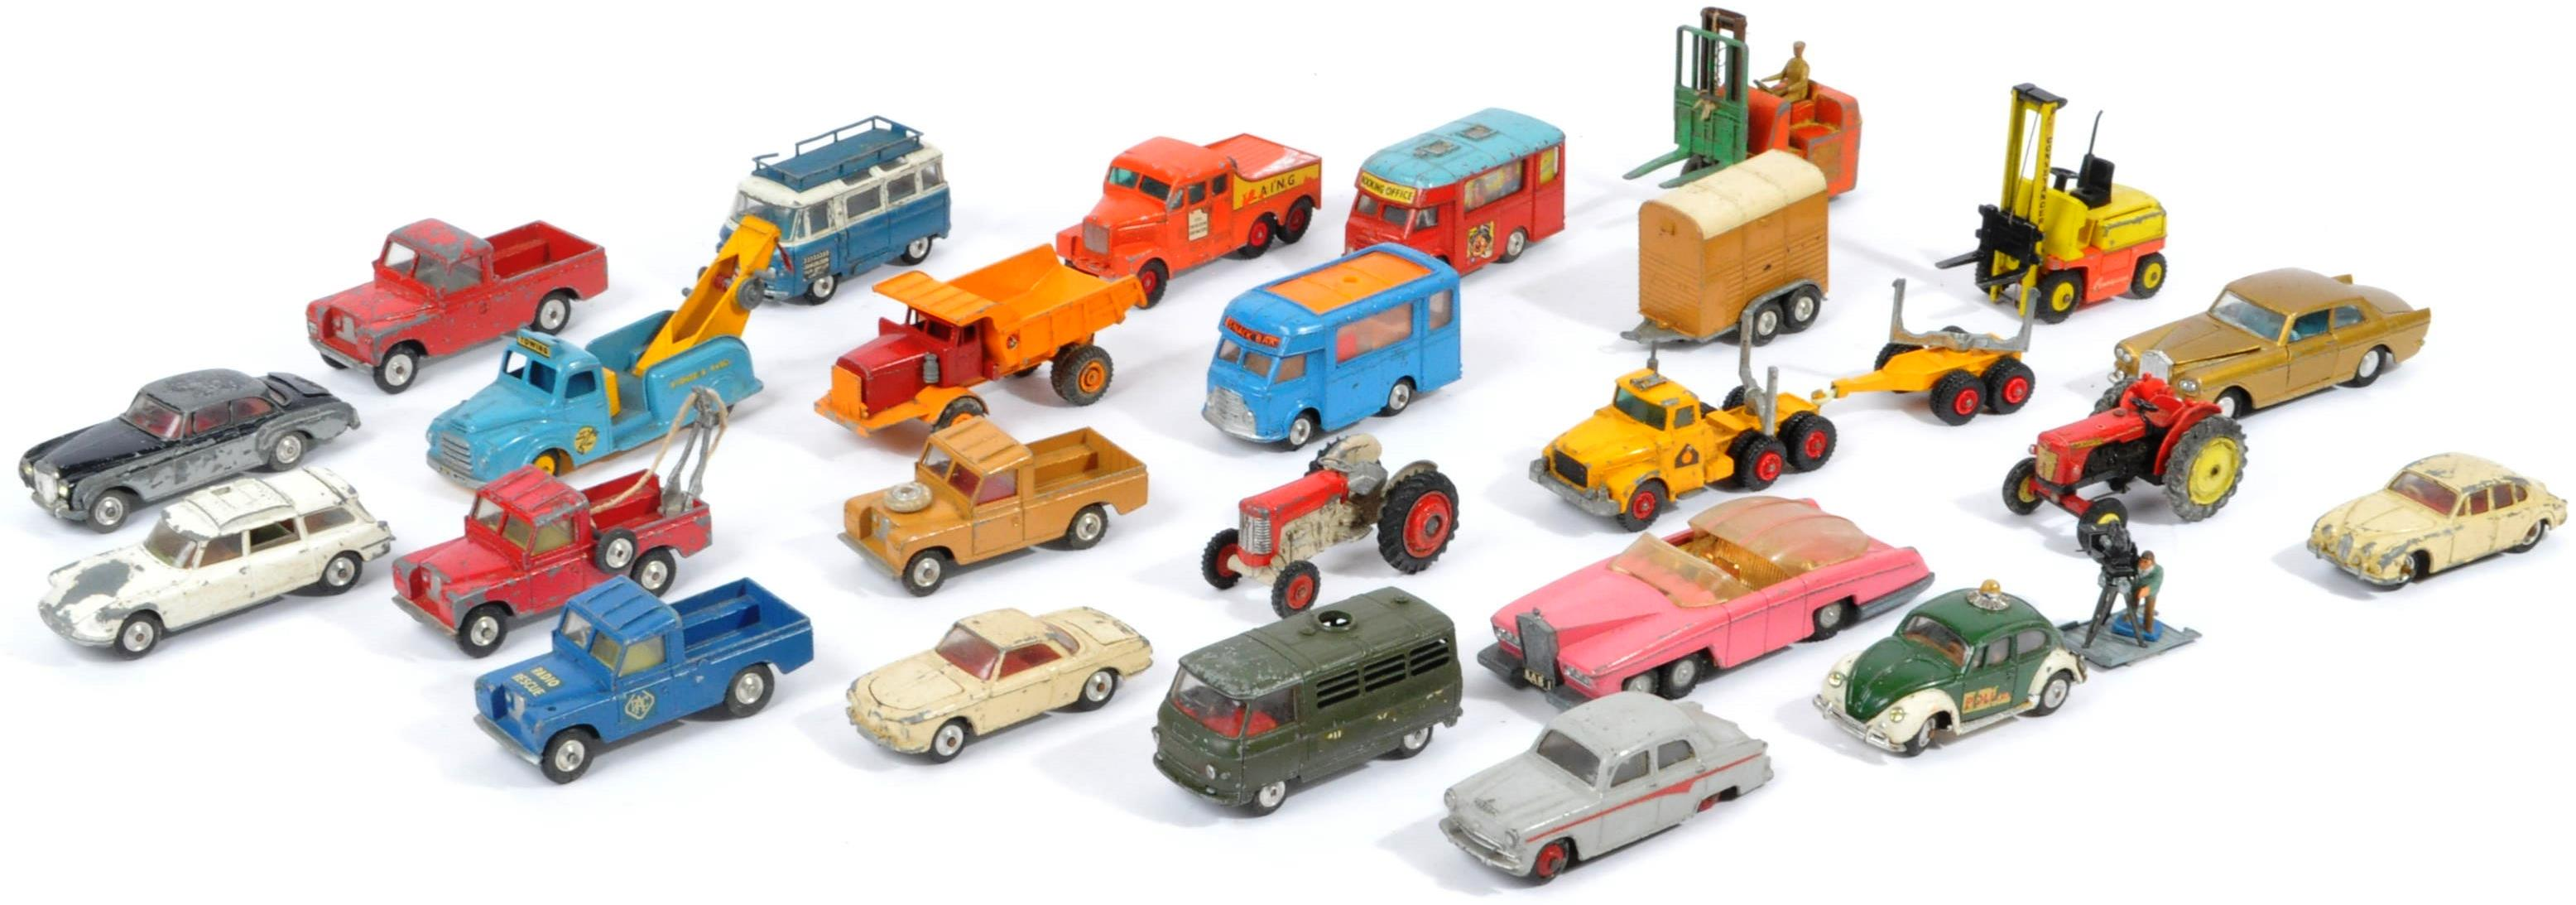 COLLECTION OF VINTAGE CORGI & DINKY TOYS DIECAST MODELS